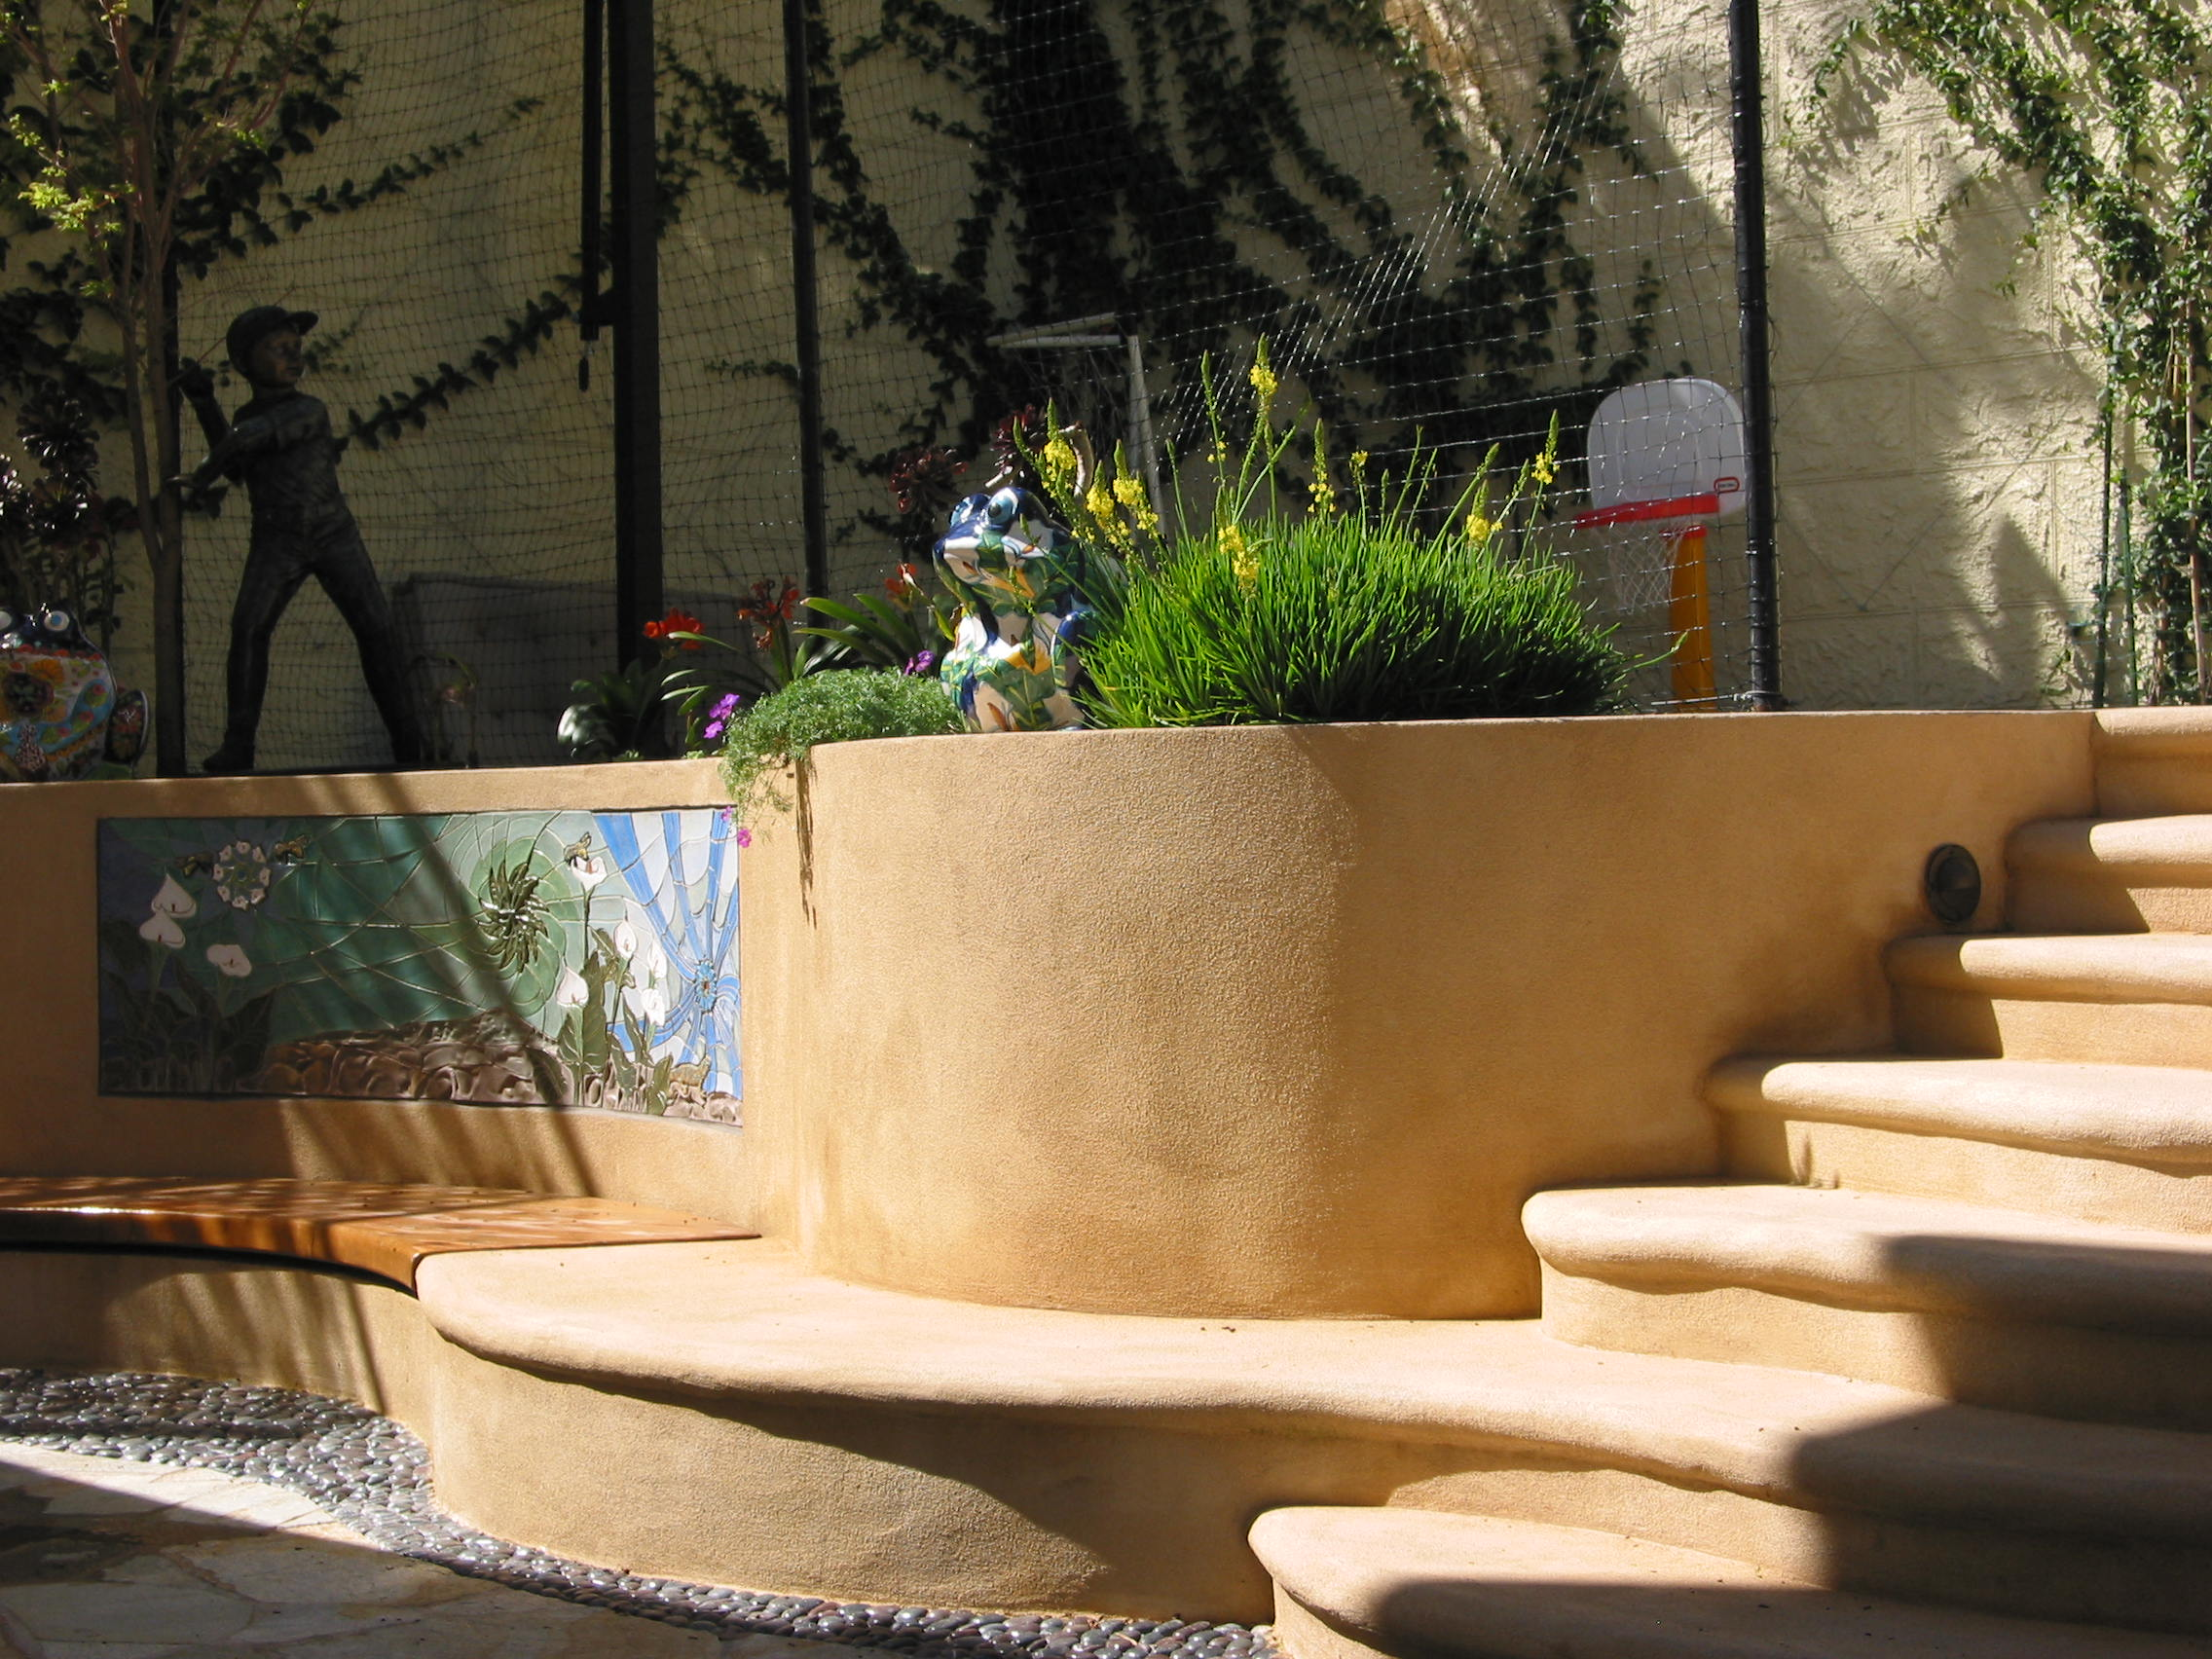 Campbell_planter and stairs.JPG